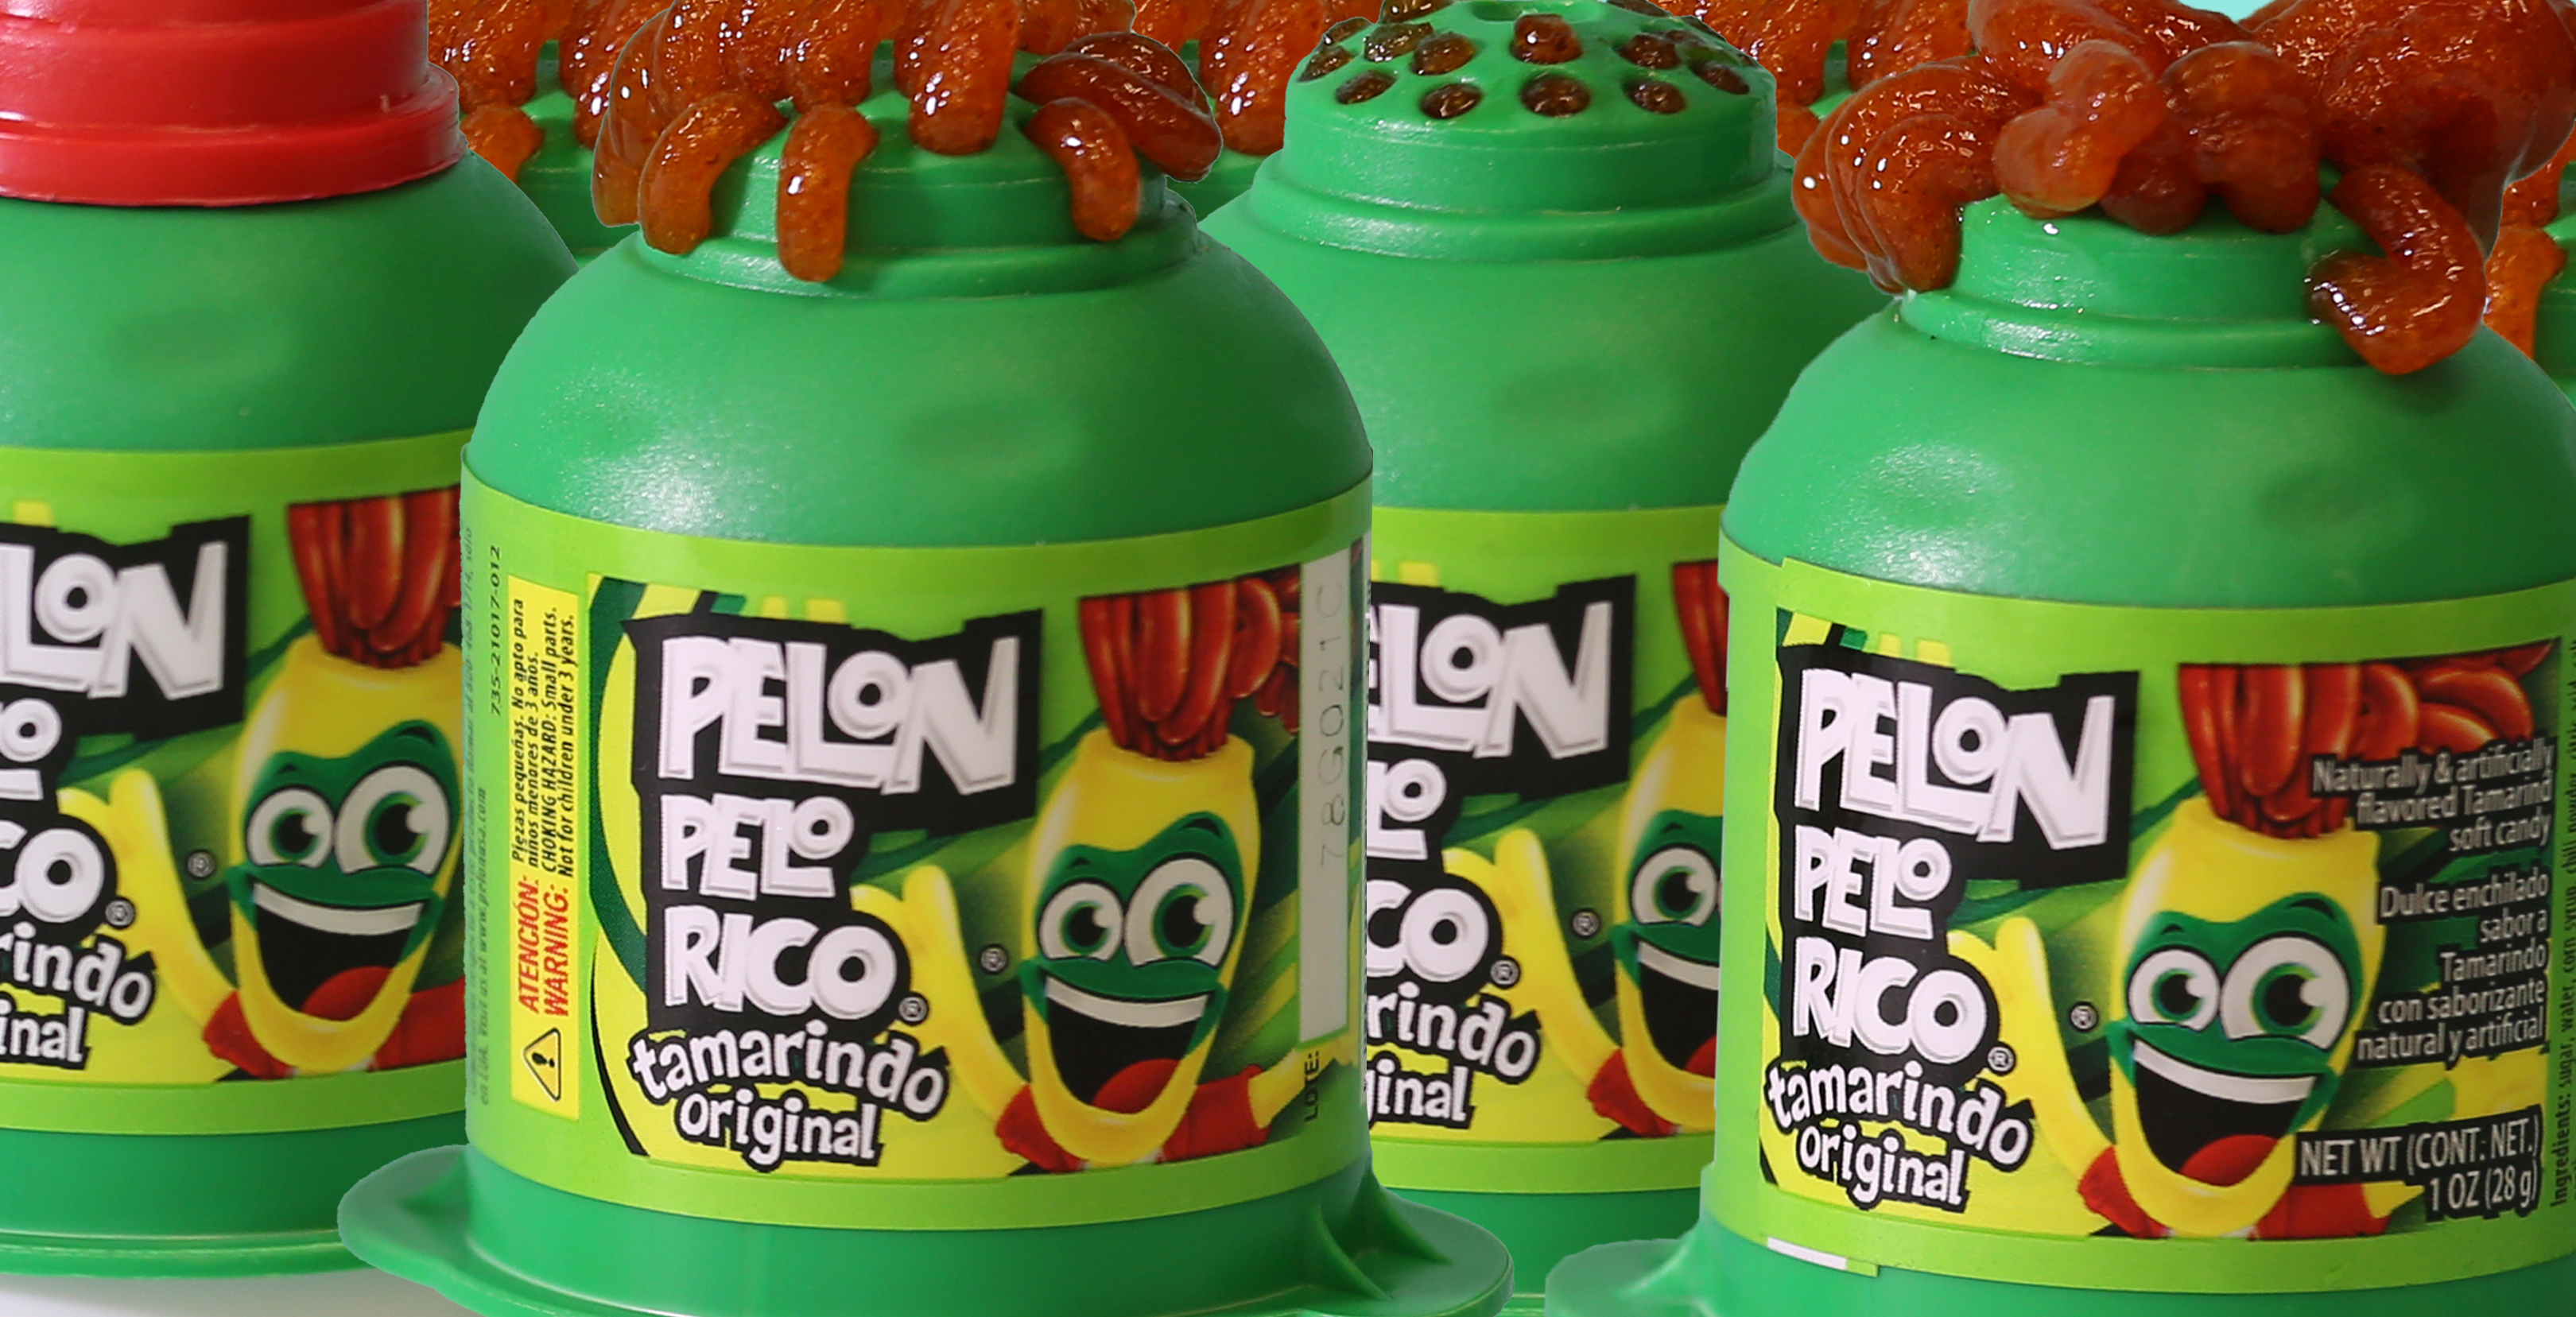 Pelón Pone Rico Is the Weed-Infused Take On the Mexican Tamarind Candy